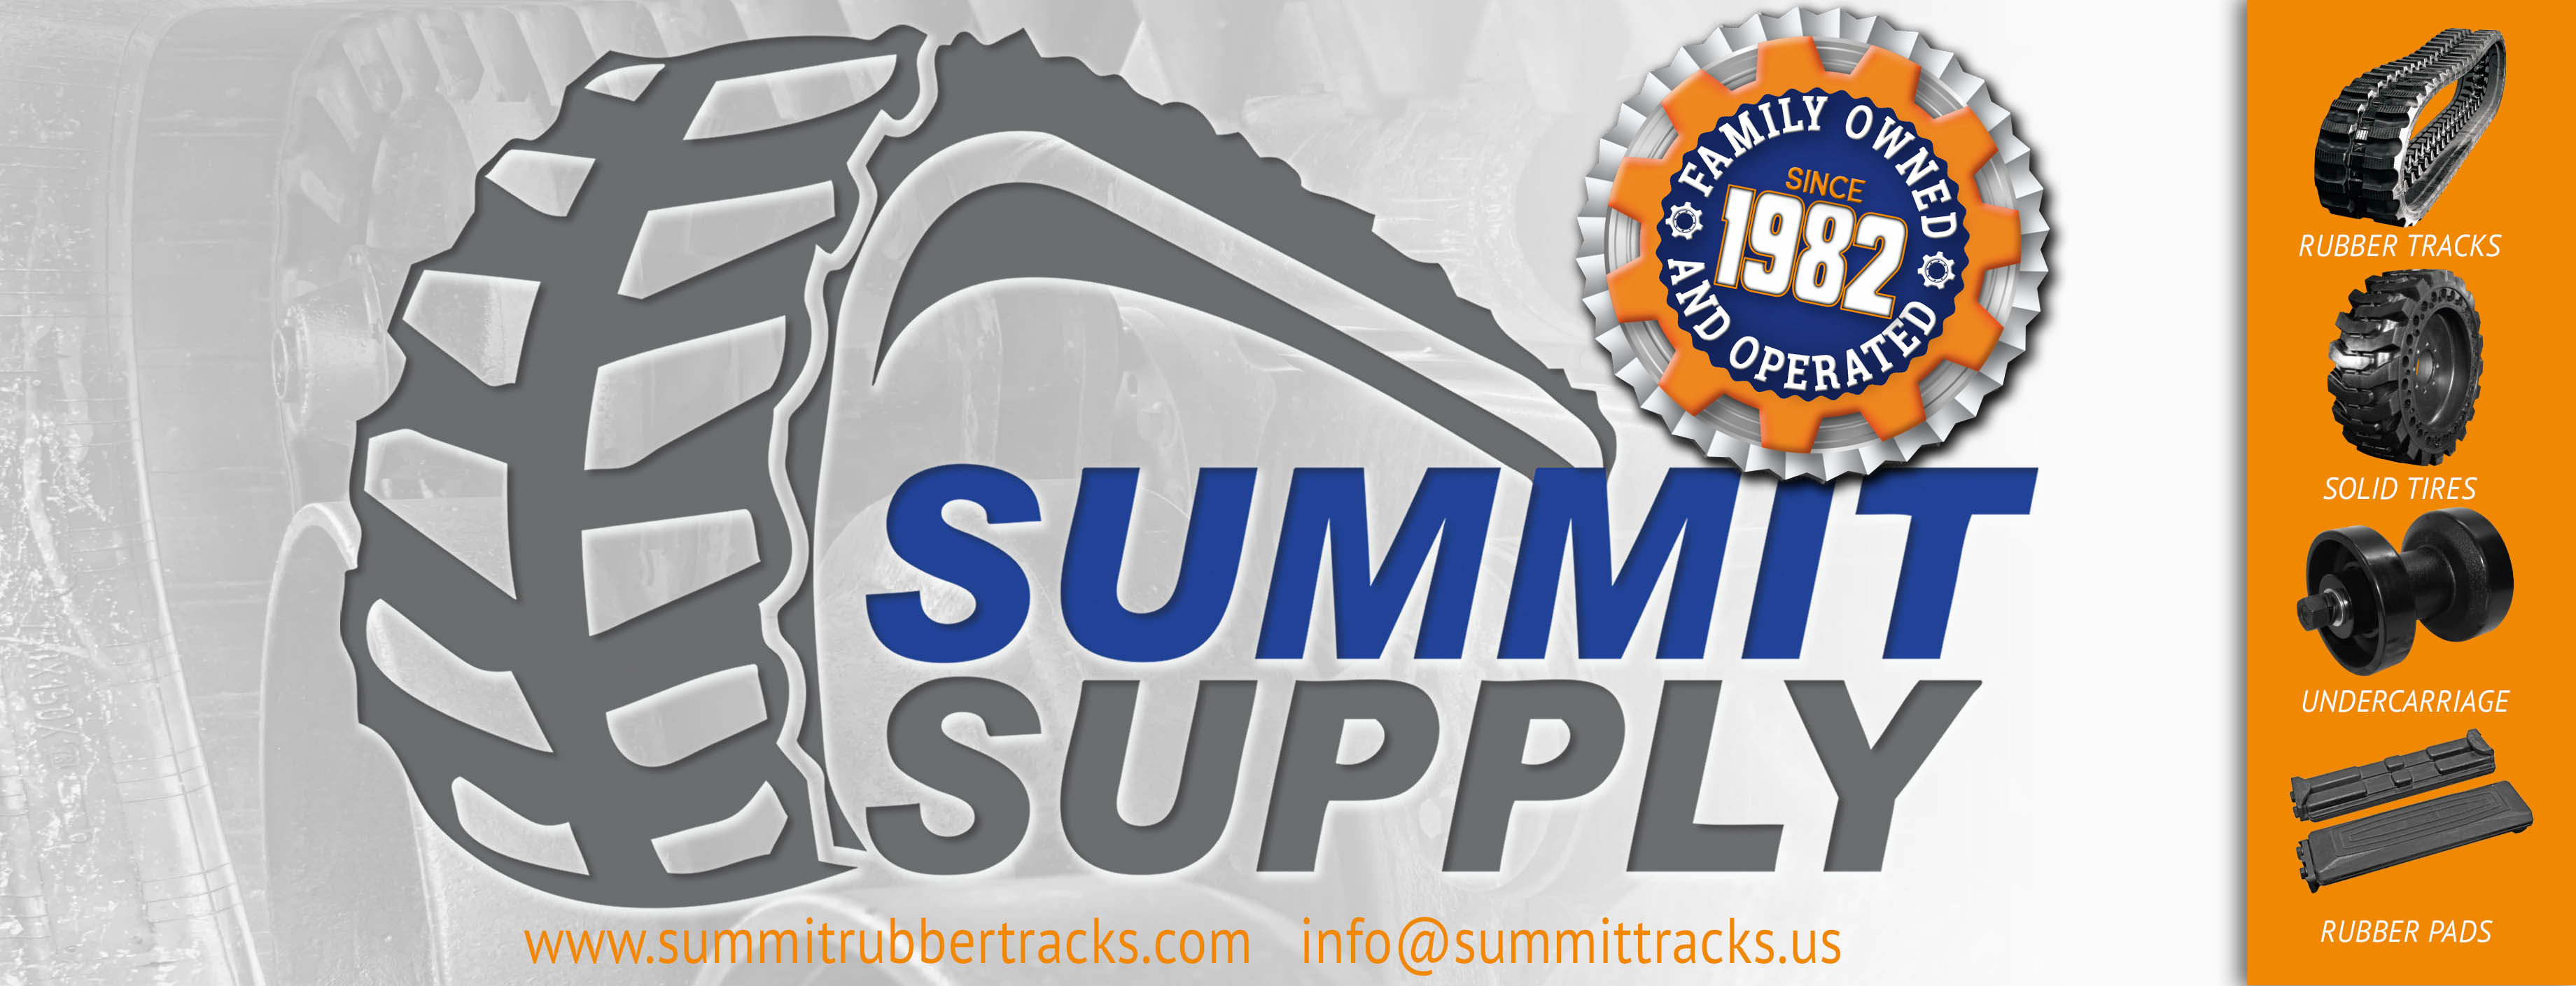 Summit Supply LLC | Quality Rubber Tracks to Fit Your